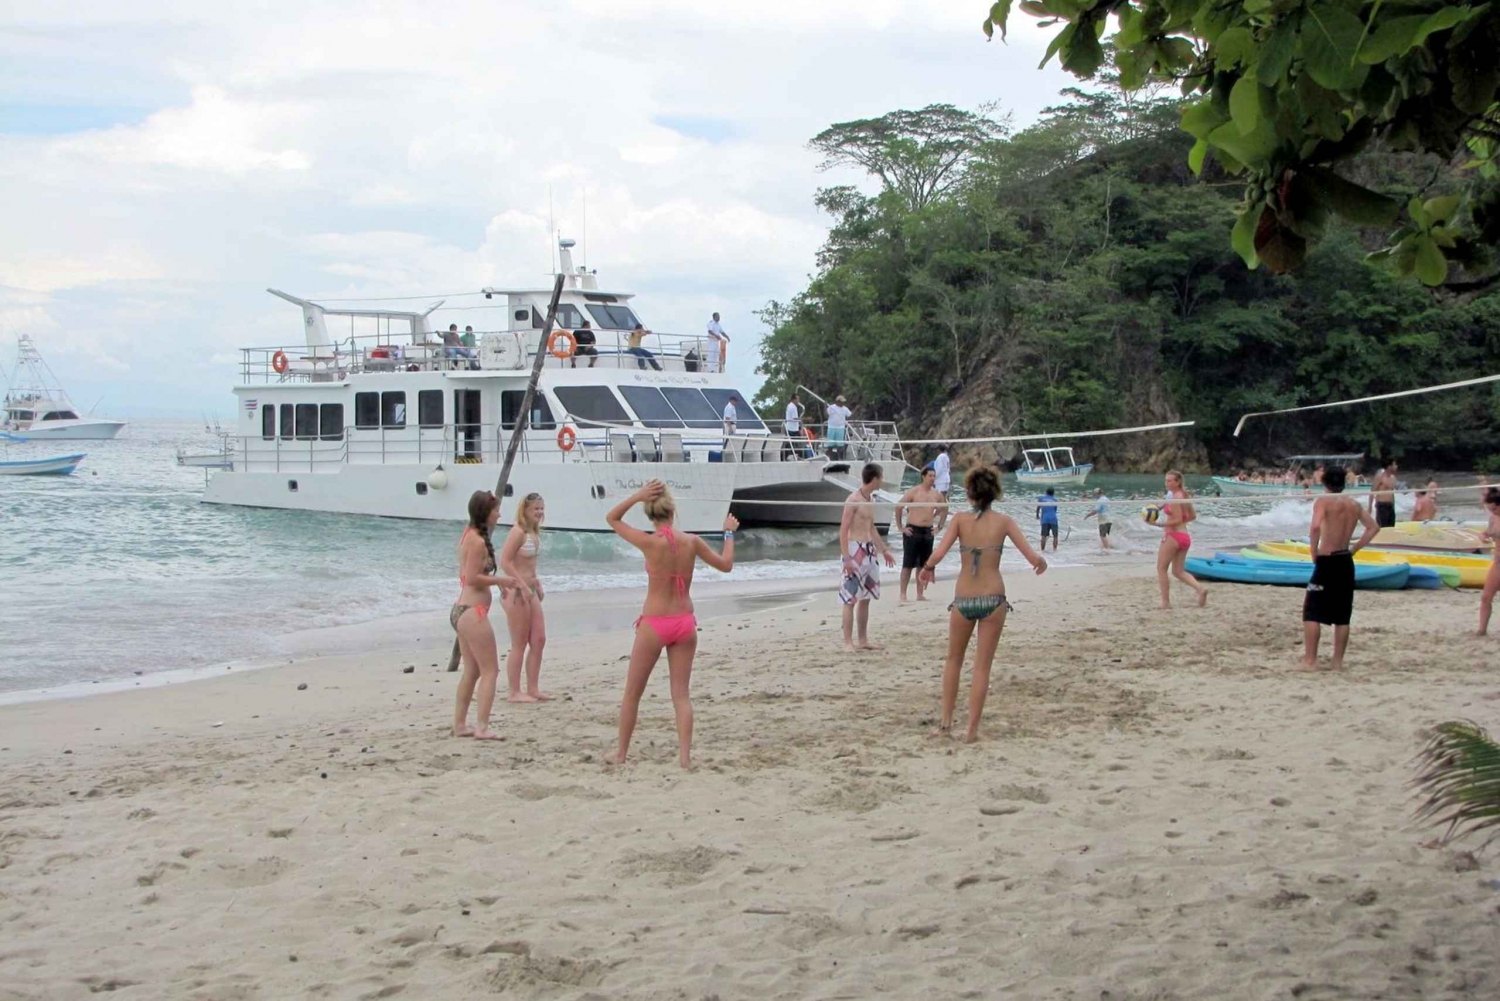 Tortuga Island Cruise from Jaco